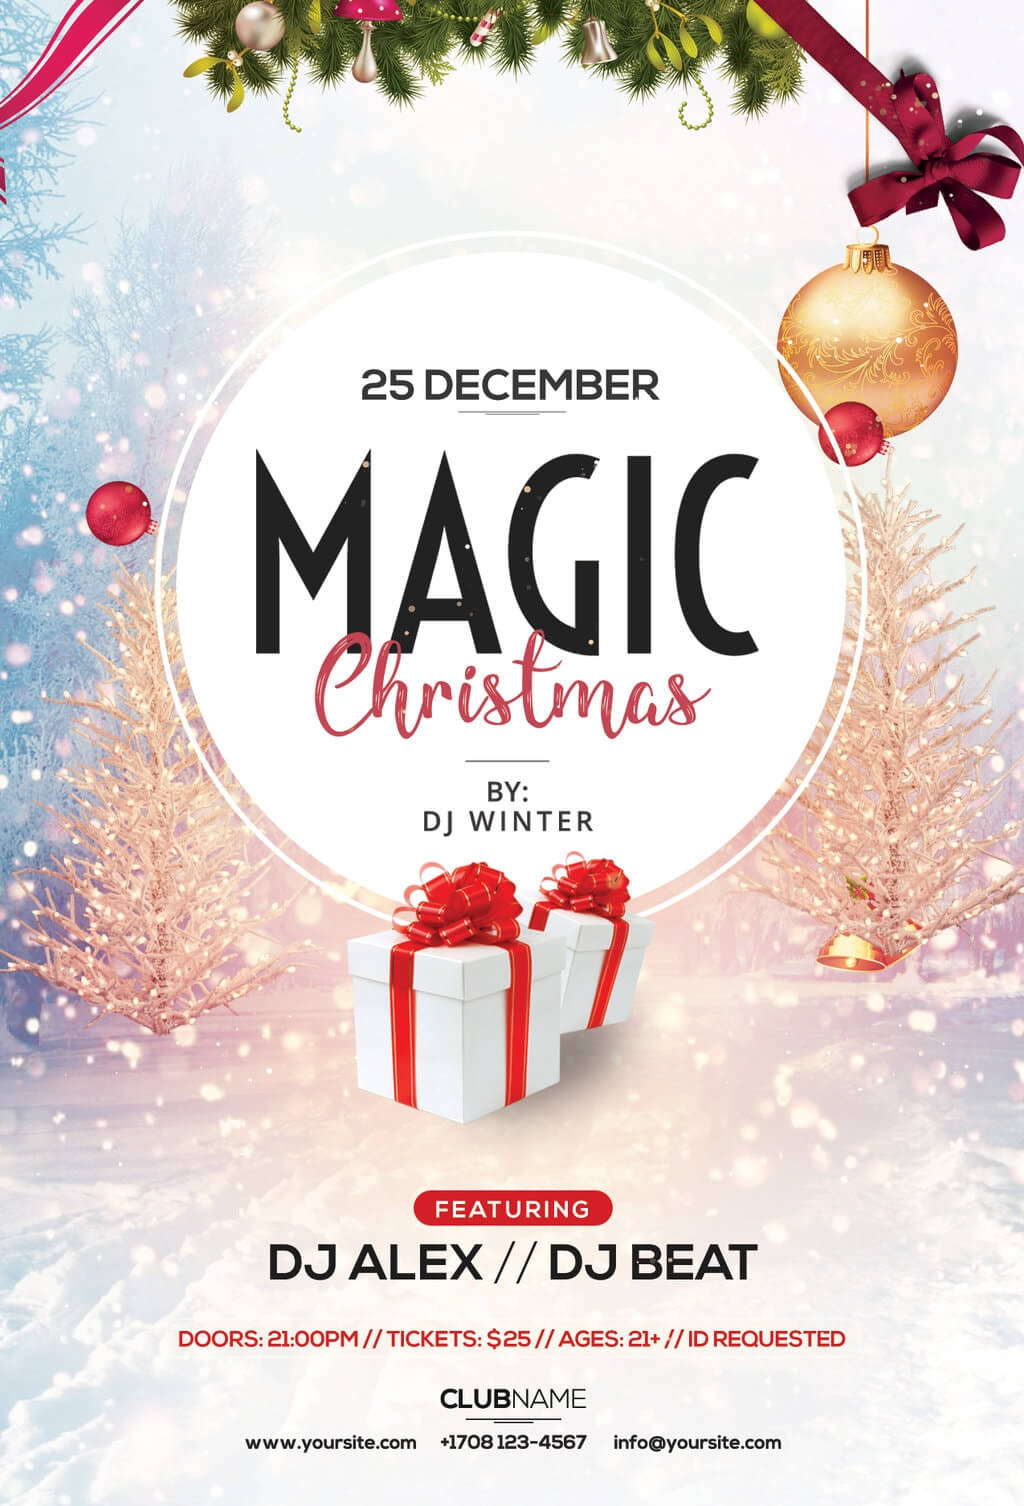 Magic Christmas Free Psd Flyer Template   Freebiedesign Throughout Christmas Brochure Templates Free